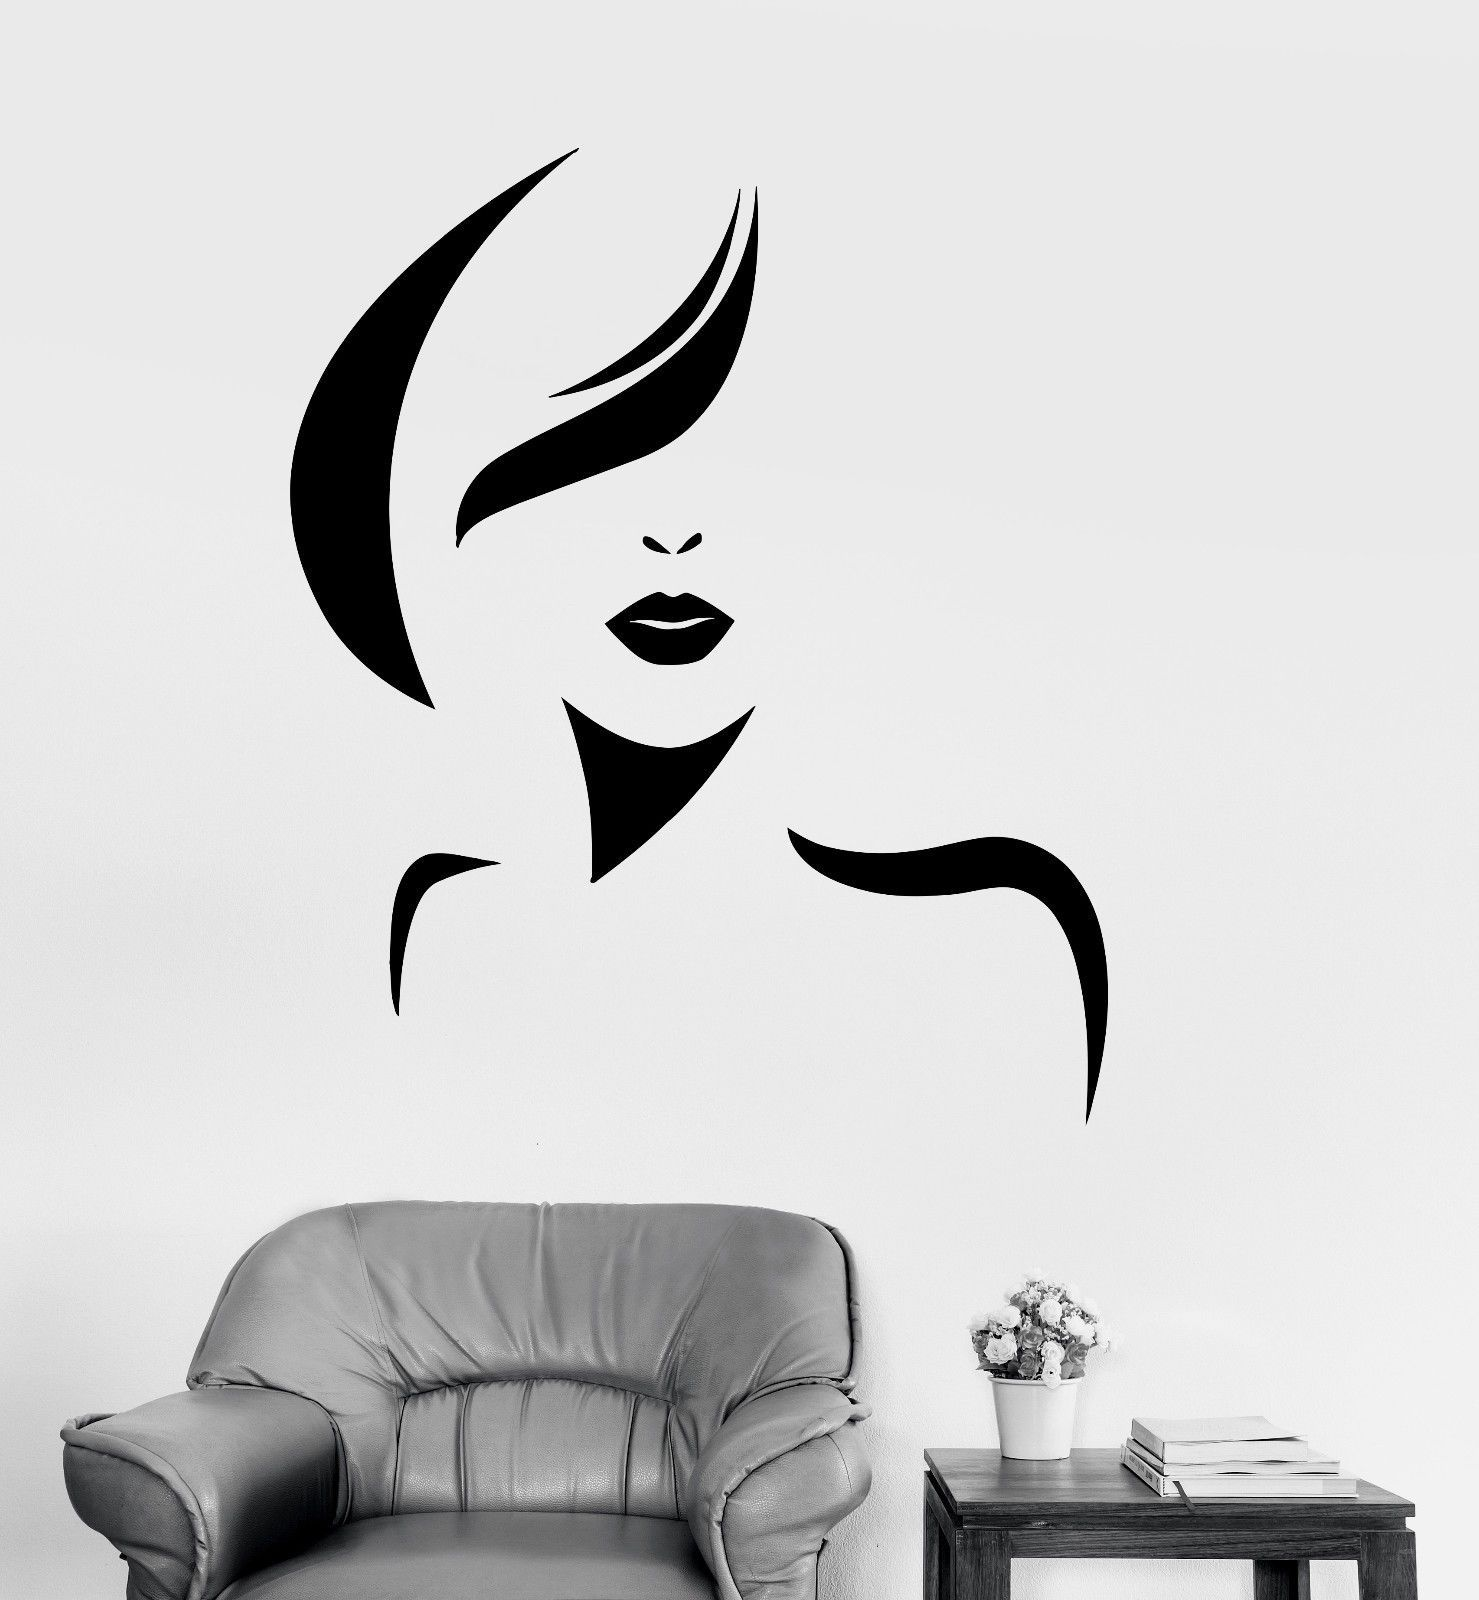 Butterfly wall stickers vinyl art decals motif graphic picture stencil lounge 24